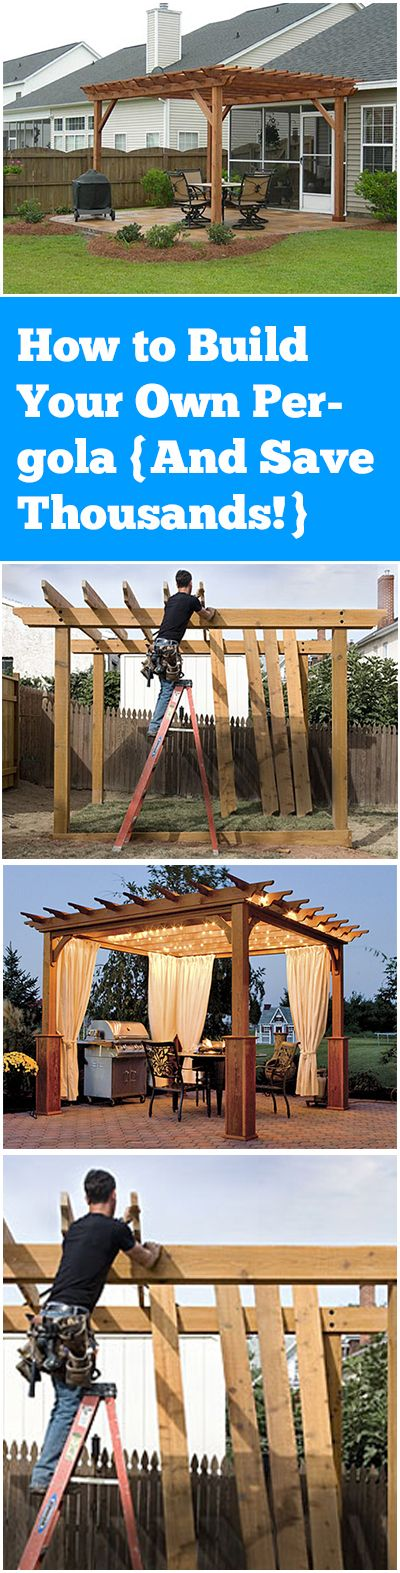 Porch Pergola Plans   Outdoor Plans And Projects | WoodArchivist.com |  Outdoor Plans | Pinterest | Pergola Plans, Pergolas And Porch